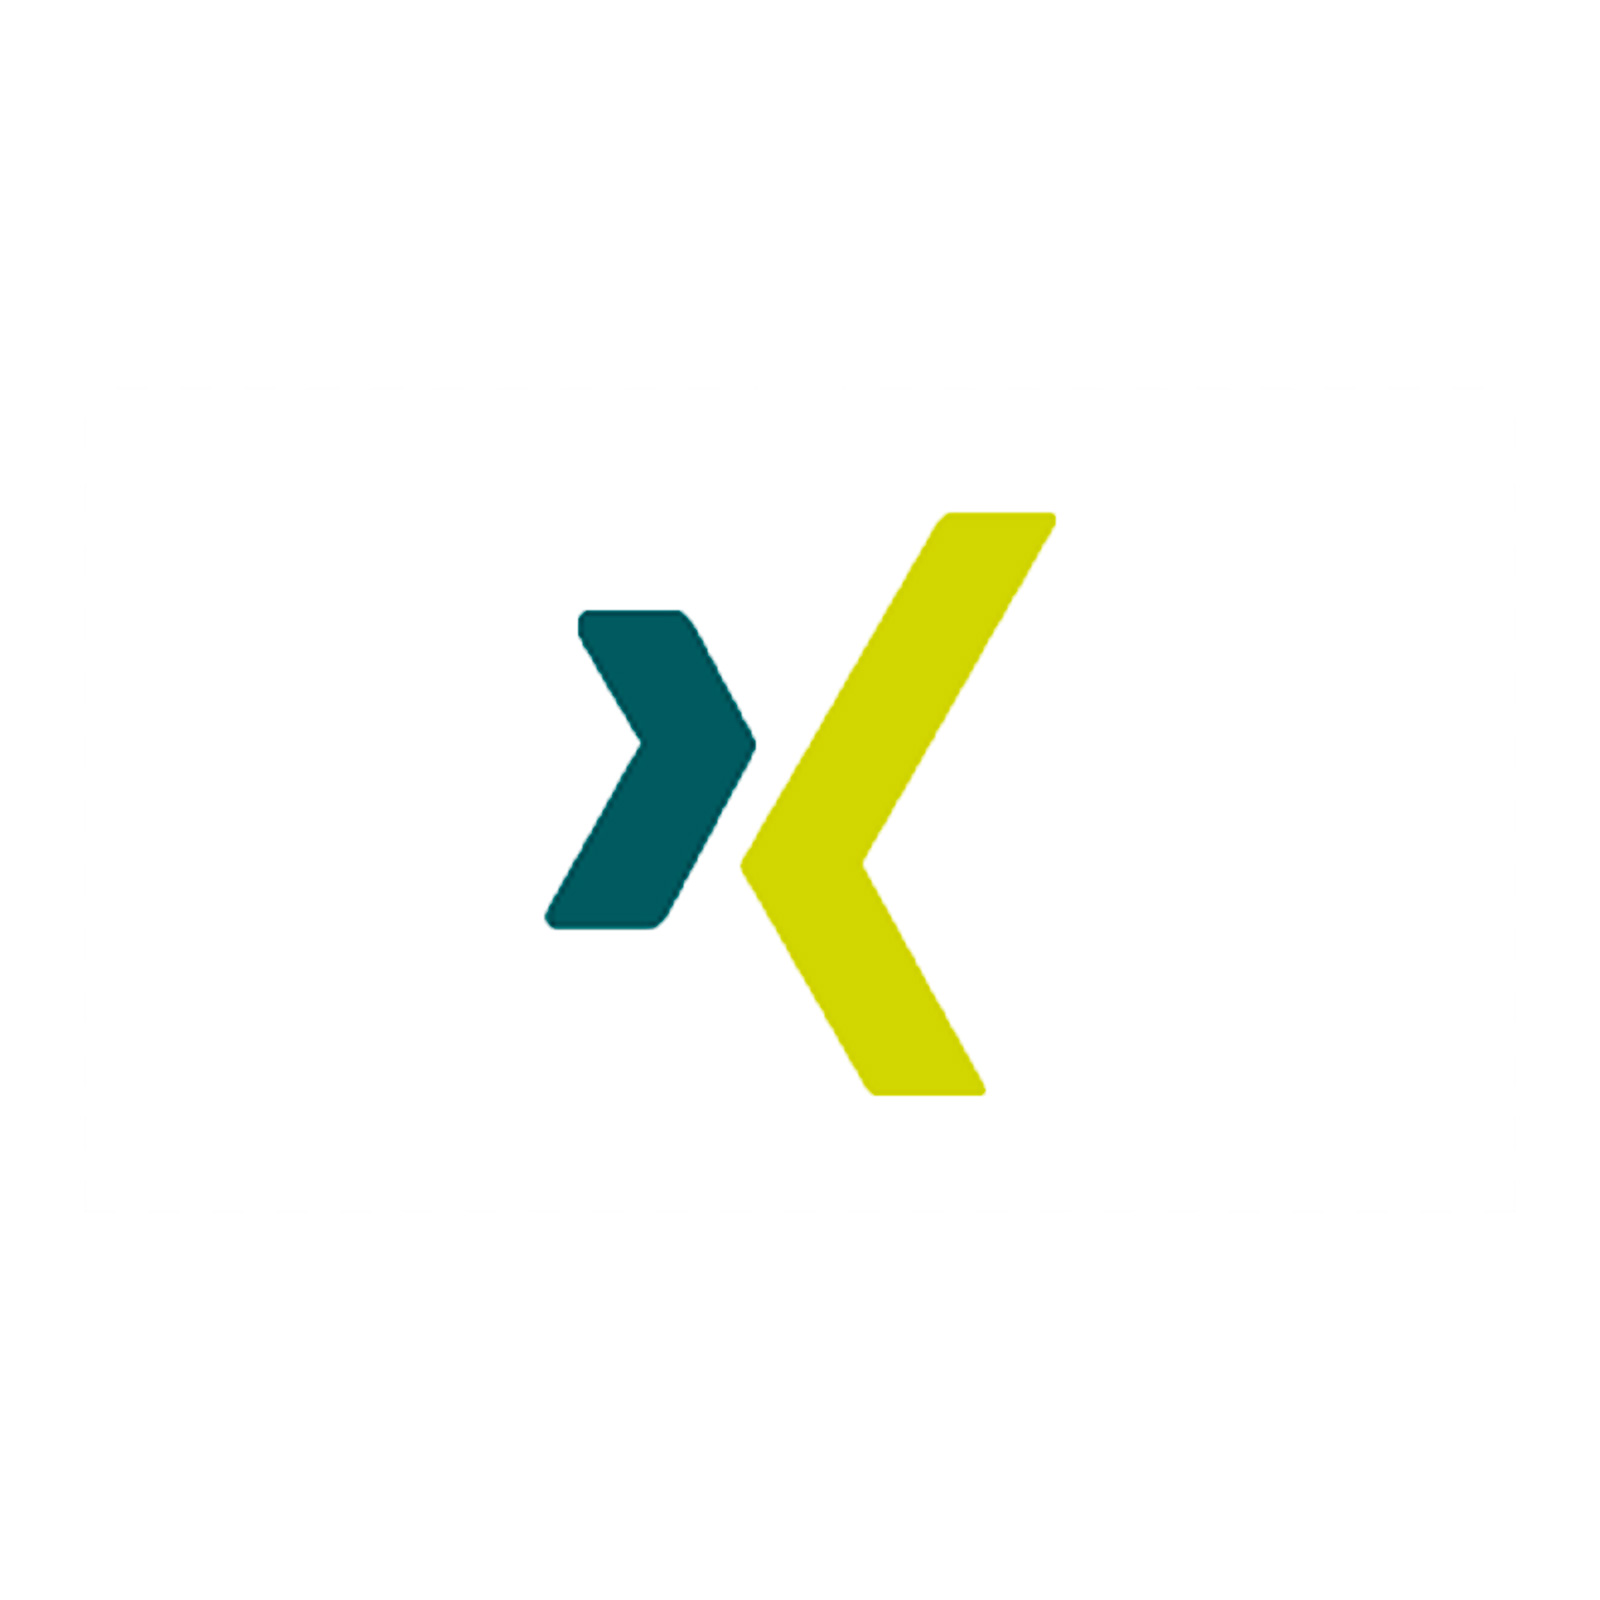 Another business-oriented social networking website, XING, launches. This service is more popular in Europe.